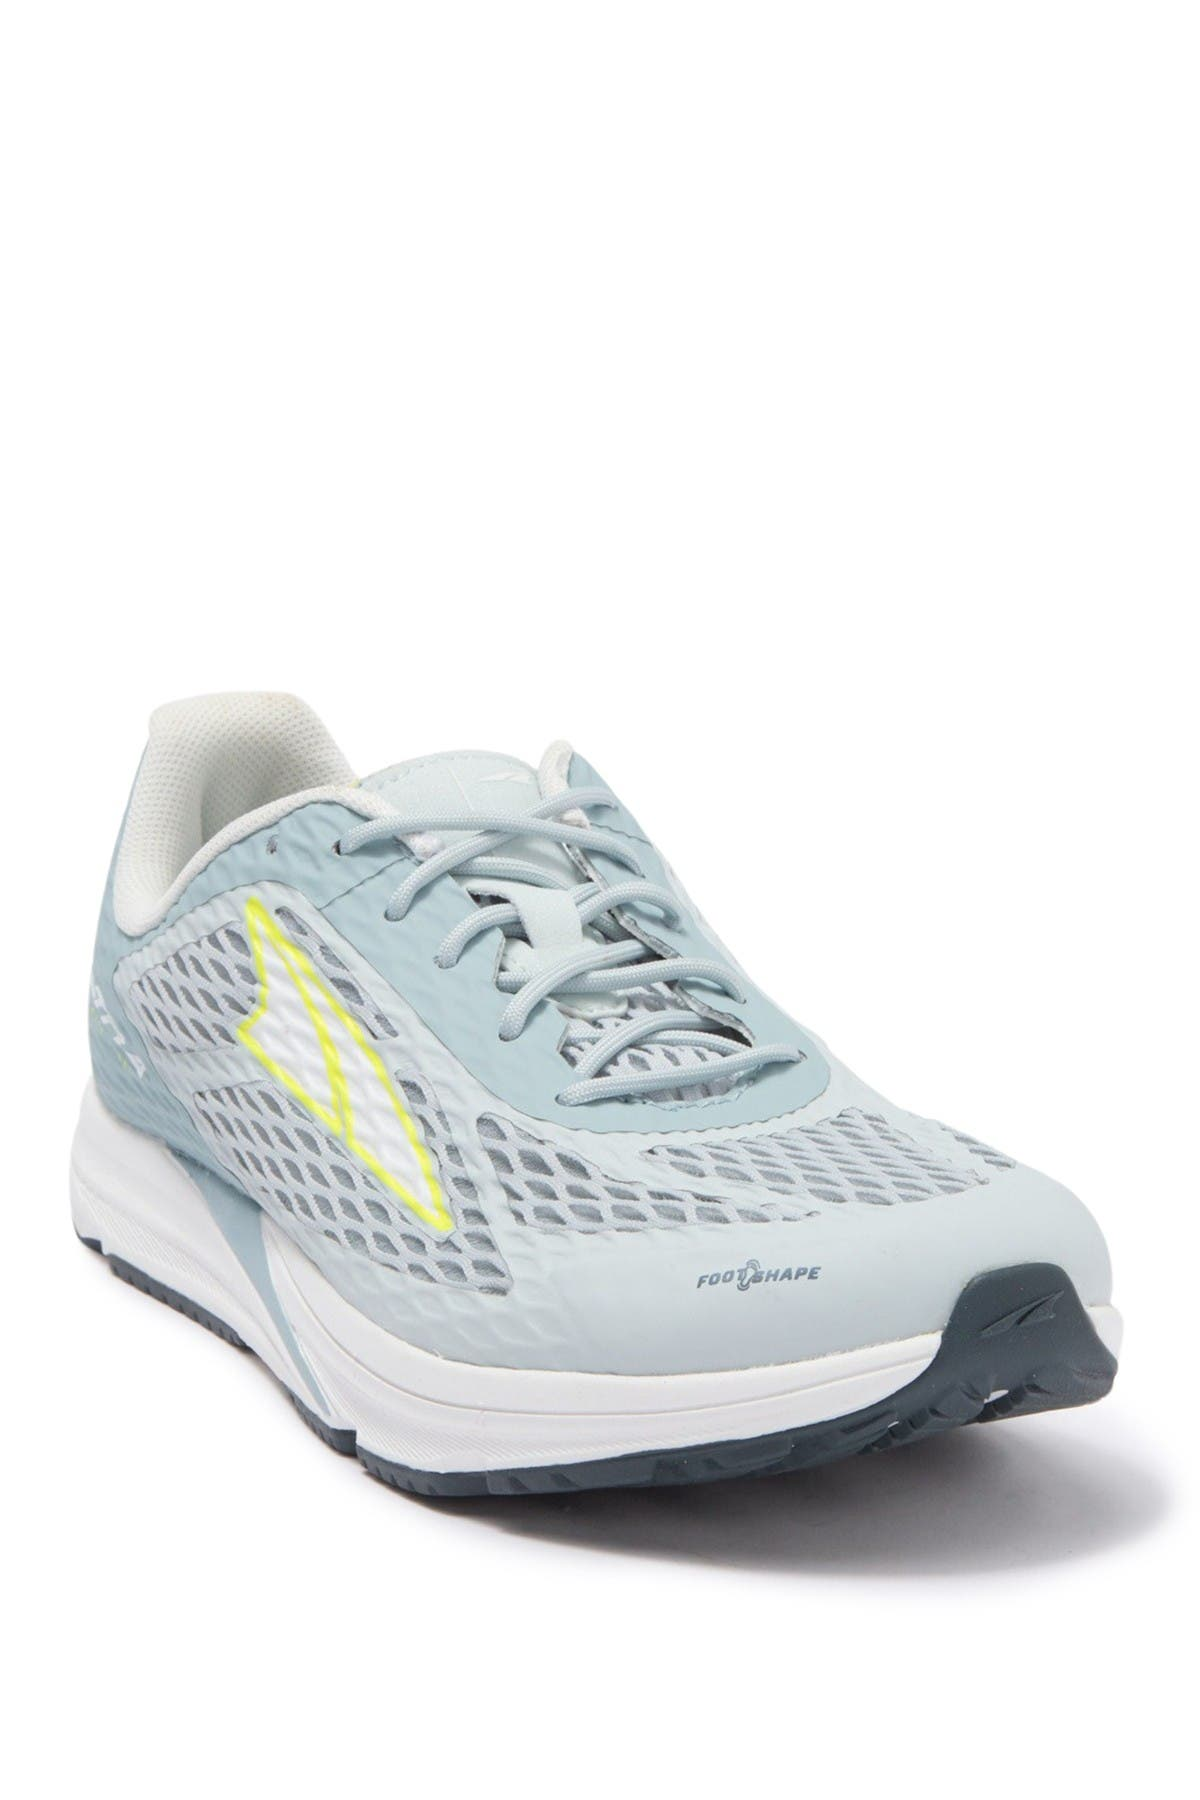 Image of ALTRA Viho Road Running Sneaker